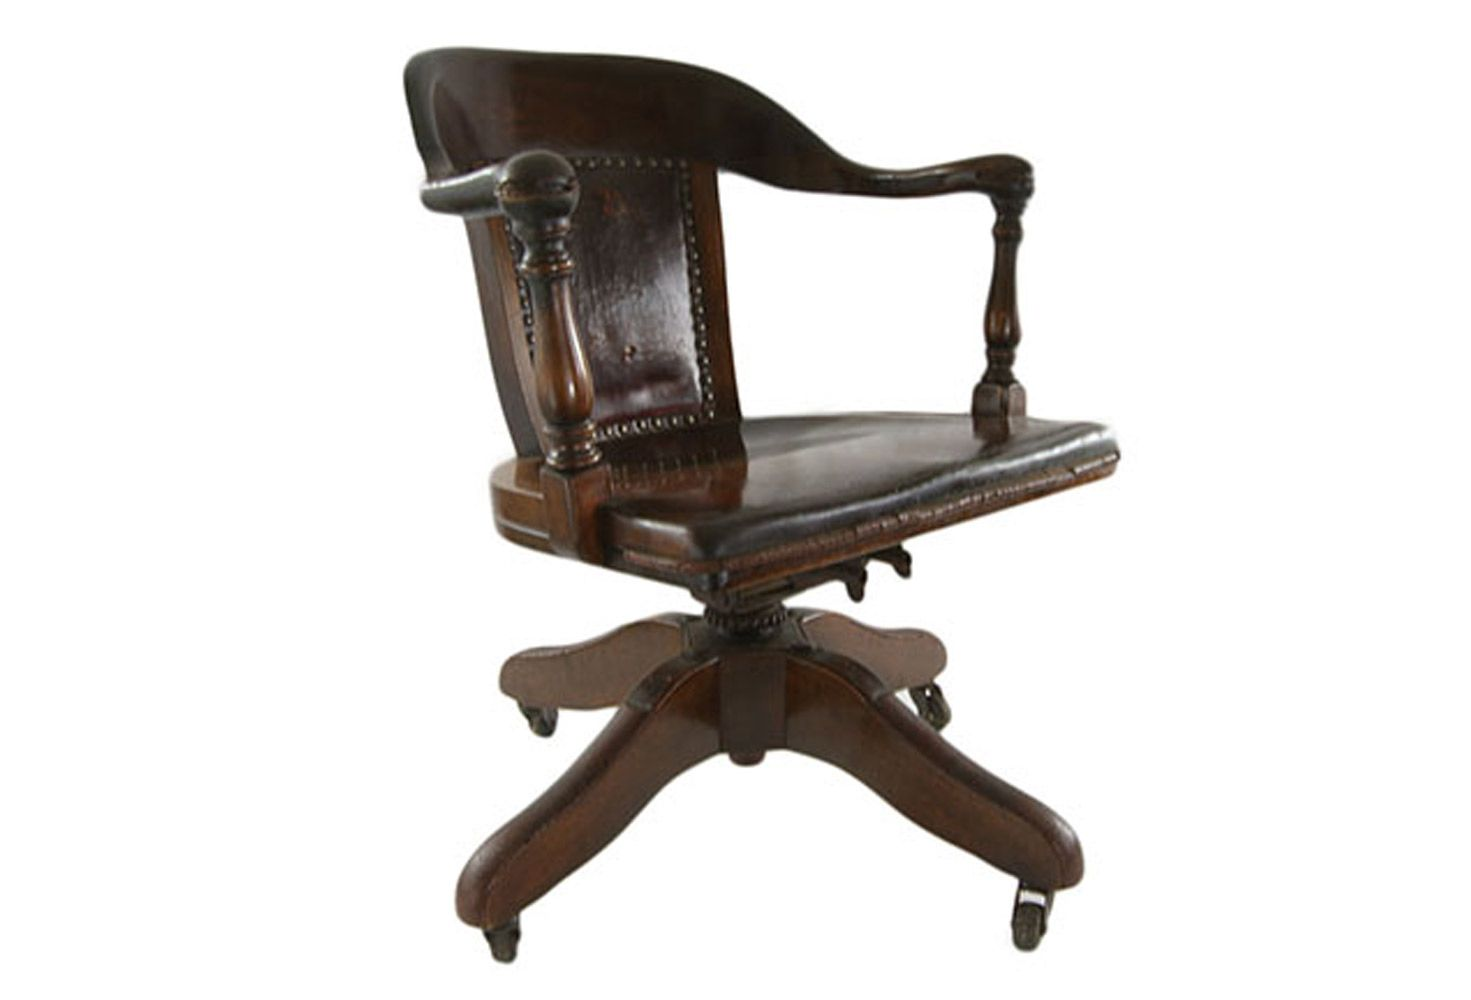 Antique Bankers Chair With Original Leather Seat Cushion 1885 1894